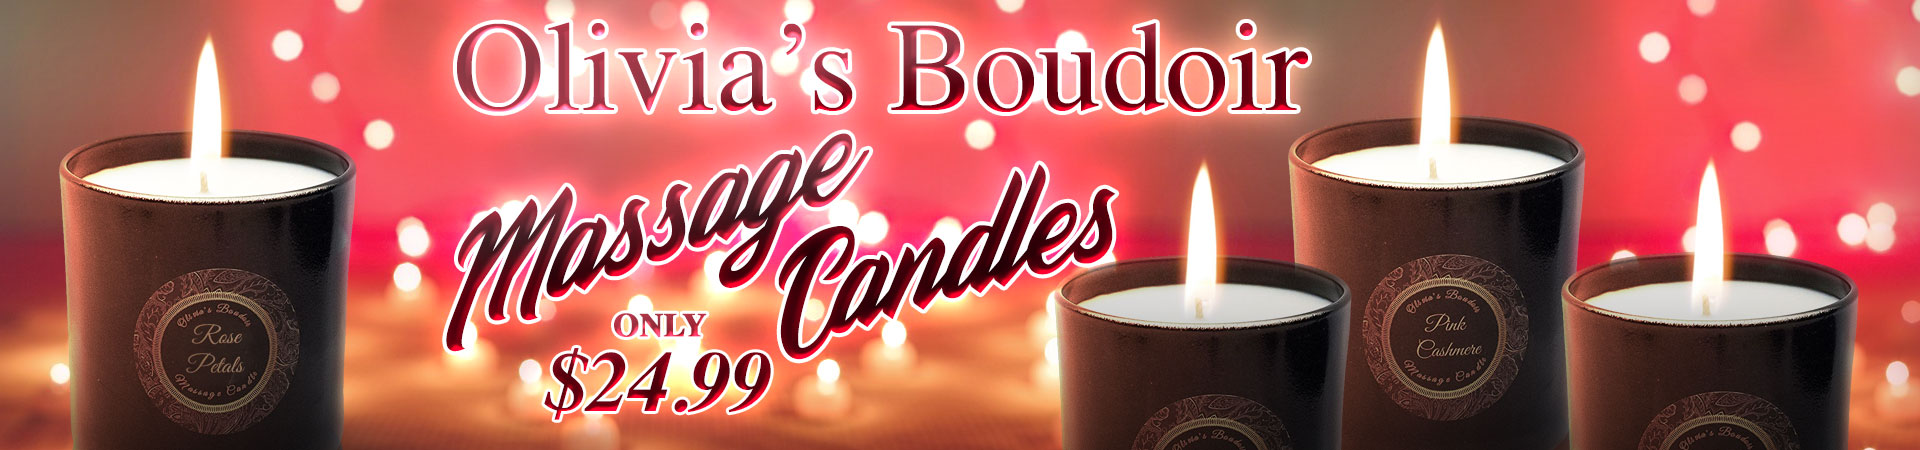 Olivia's Boudoir Massage Candles Are Now Only $24.99! - While Supplies Last!